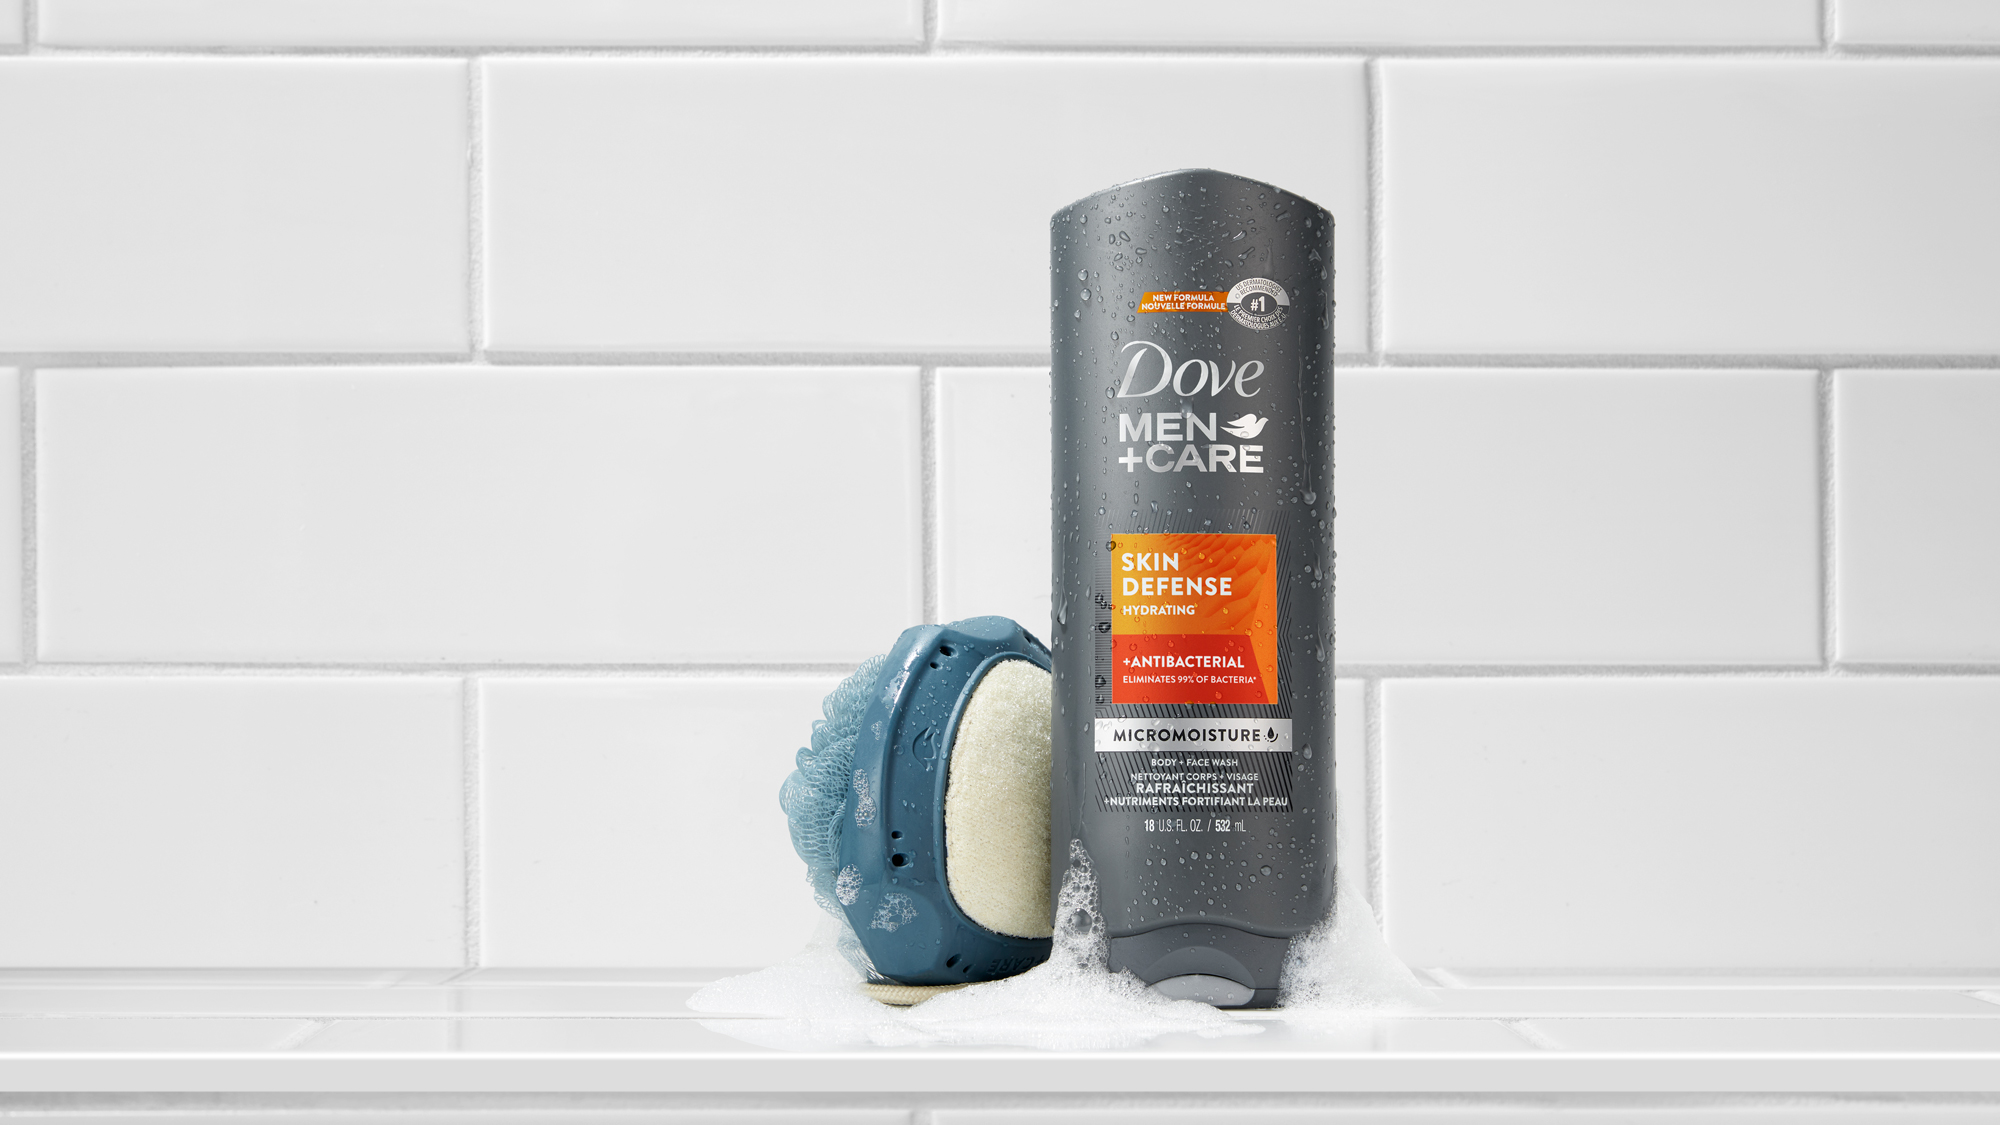 08272020_DOVE_MENS_CARE_Single_SkinDefense